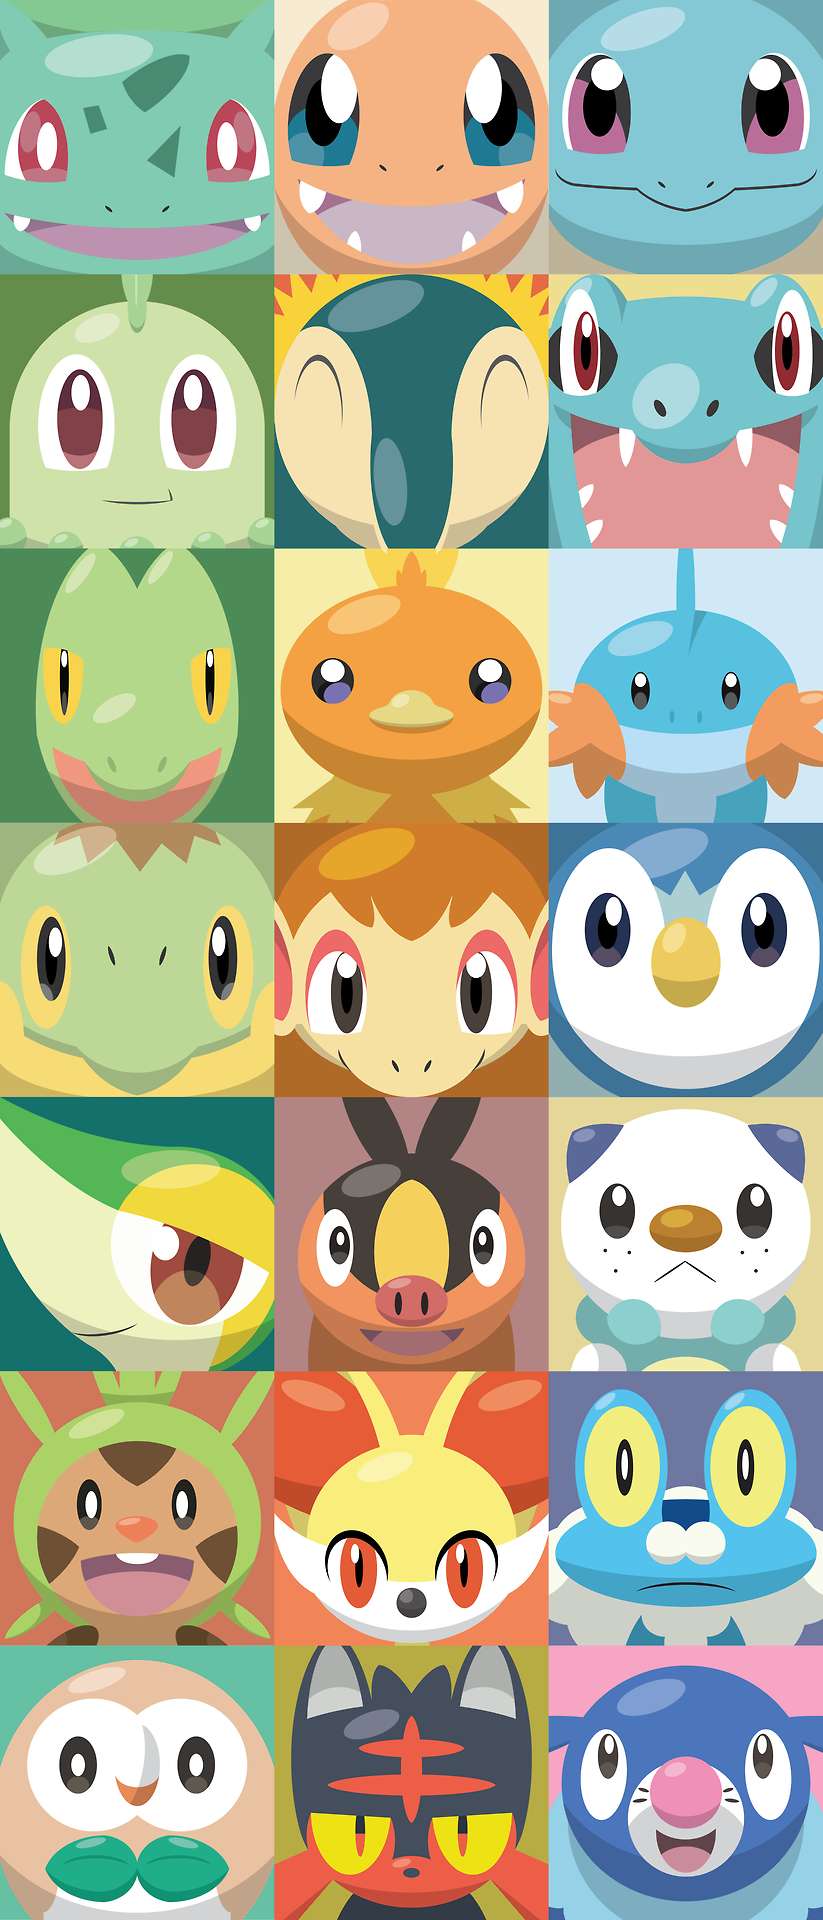 :d ^_^ bird black_eyes brown_eyes bulbasaur cat charmander chespin chikorita chimchar closed_eyes commentary creature cyndaquil english_commentary face facing_viewer fangs fennekin froakie gen_1_pokemon gen_2_pokemon gen_3_pokemon gen_4_pokemon gen_5_pokemon gen_6_pokemon gen_7_pokemon highres litten looking_at_viewer monkey mudkip no_humans open_mouth oshawott piplup pokemon pokemon_(creature) popplio red_eyes rowlet shawn_flowers smile snivy squirtle tepig torchic totodile treecko turtwig yellow_eyes